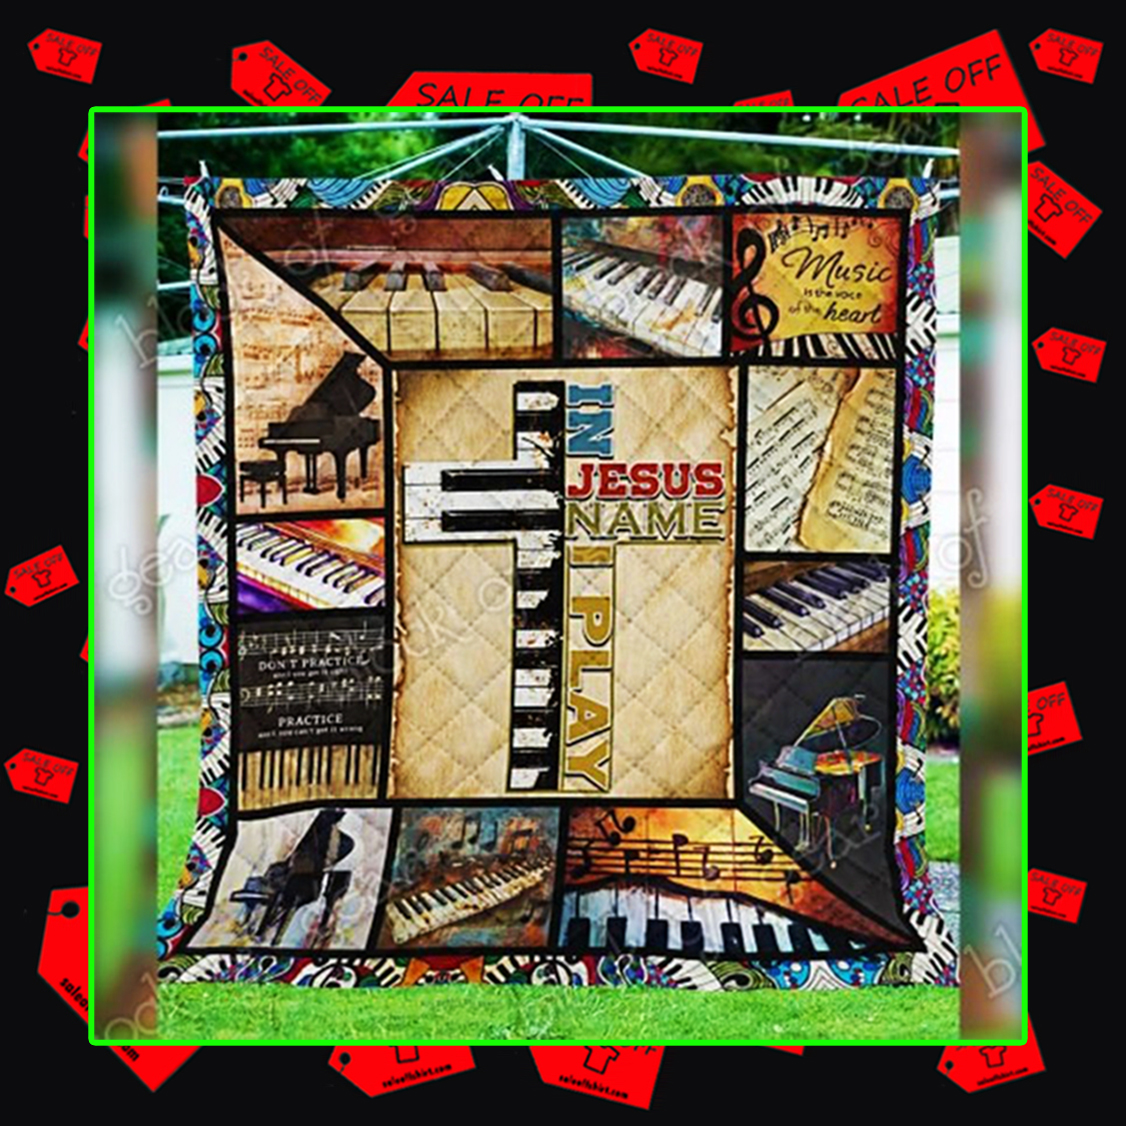 In Jesus Name I Play Piano Quilt - picture 3